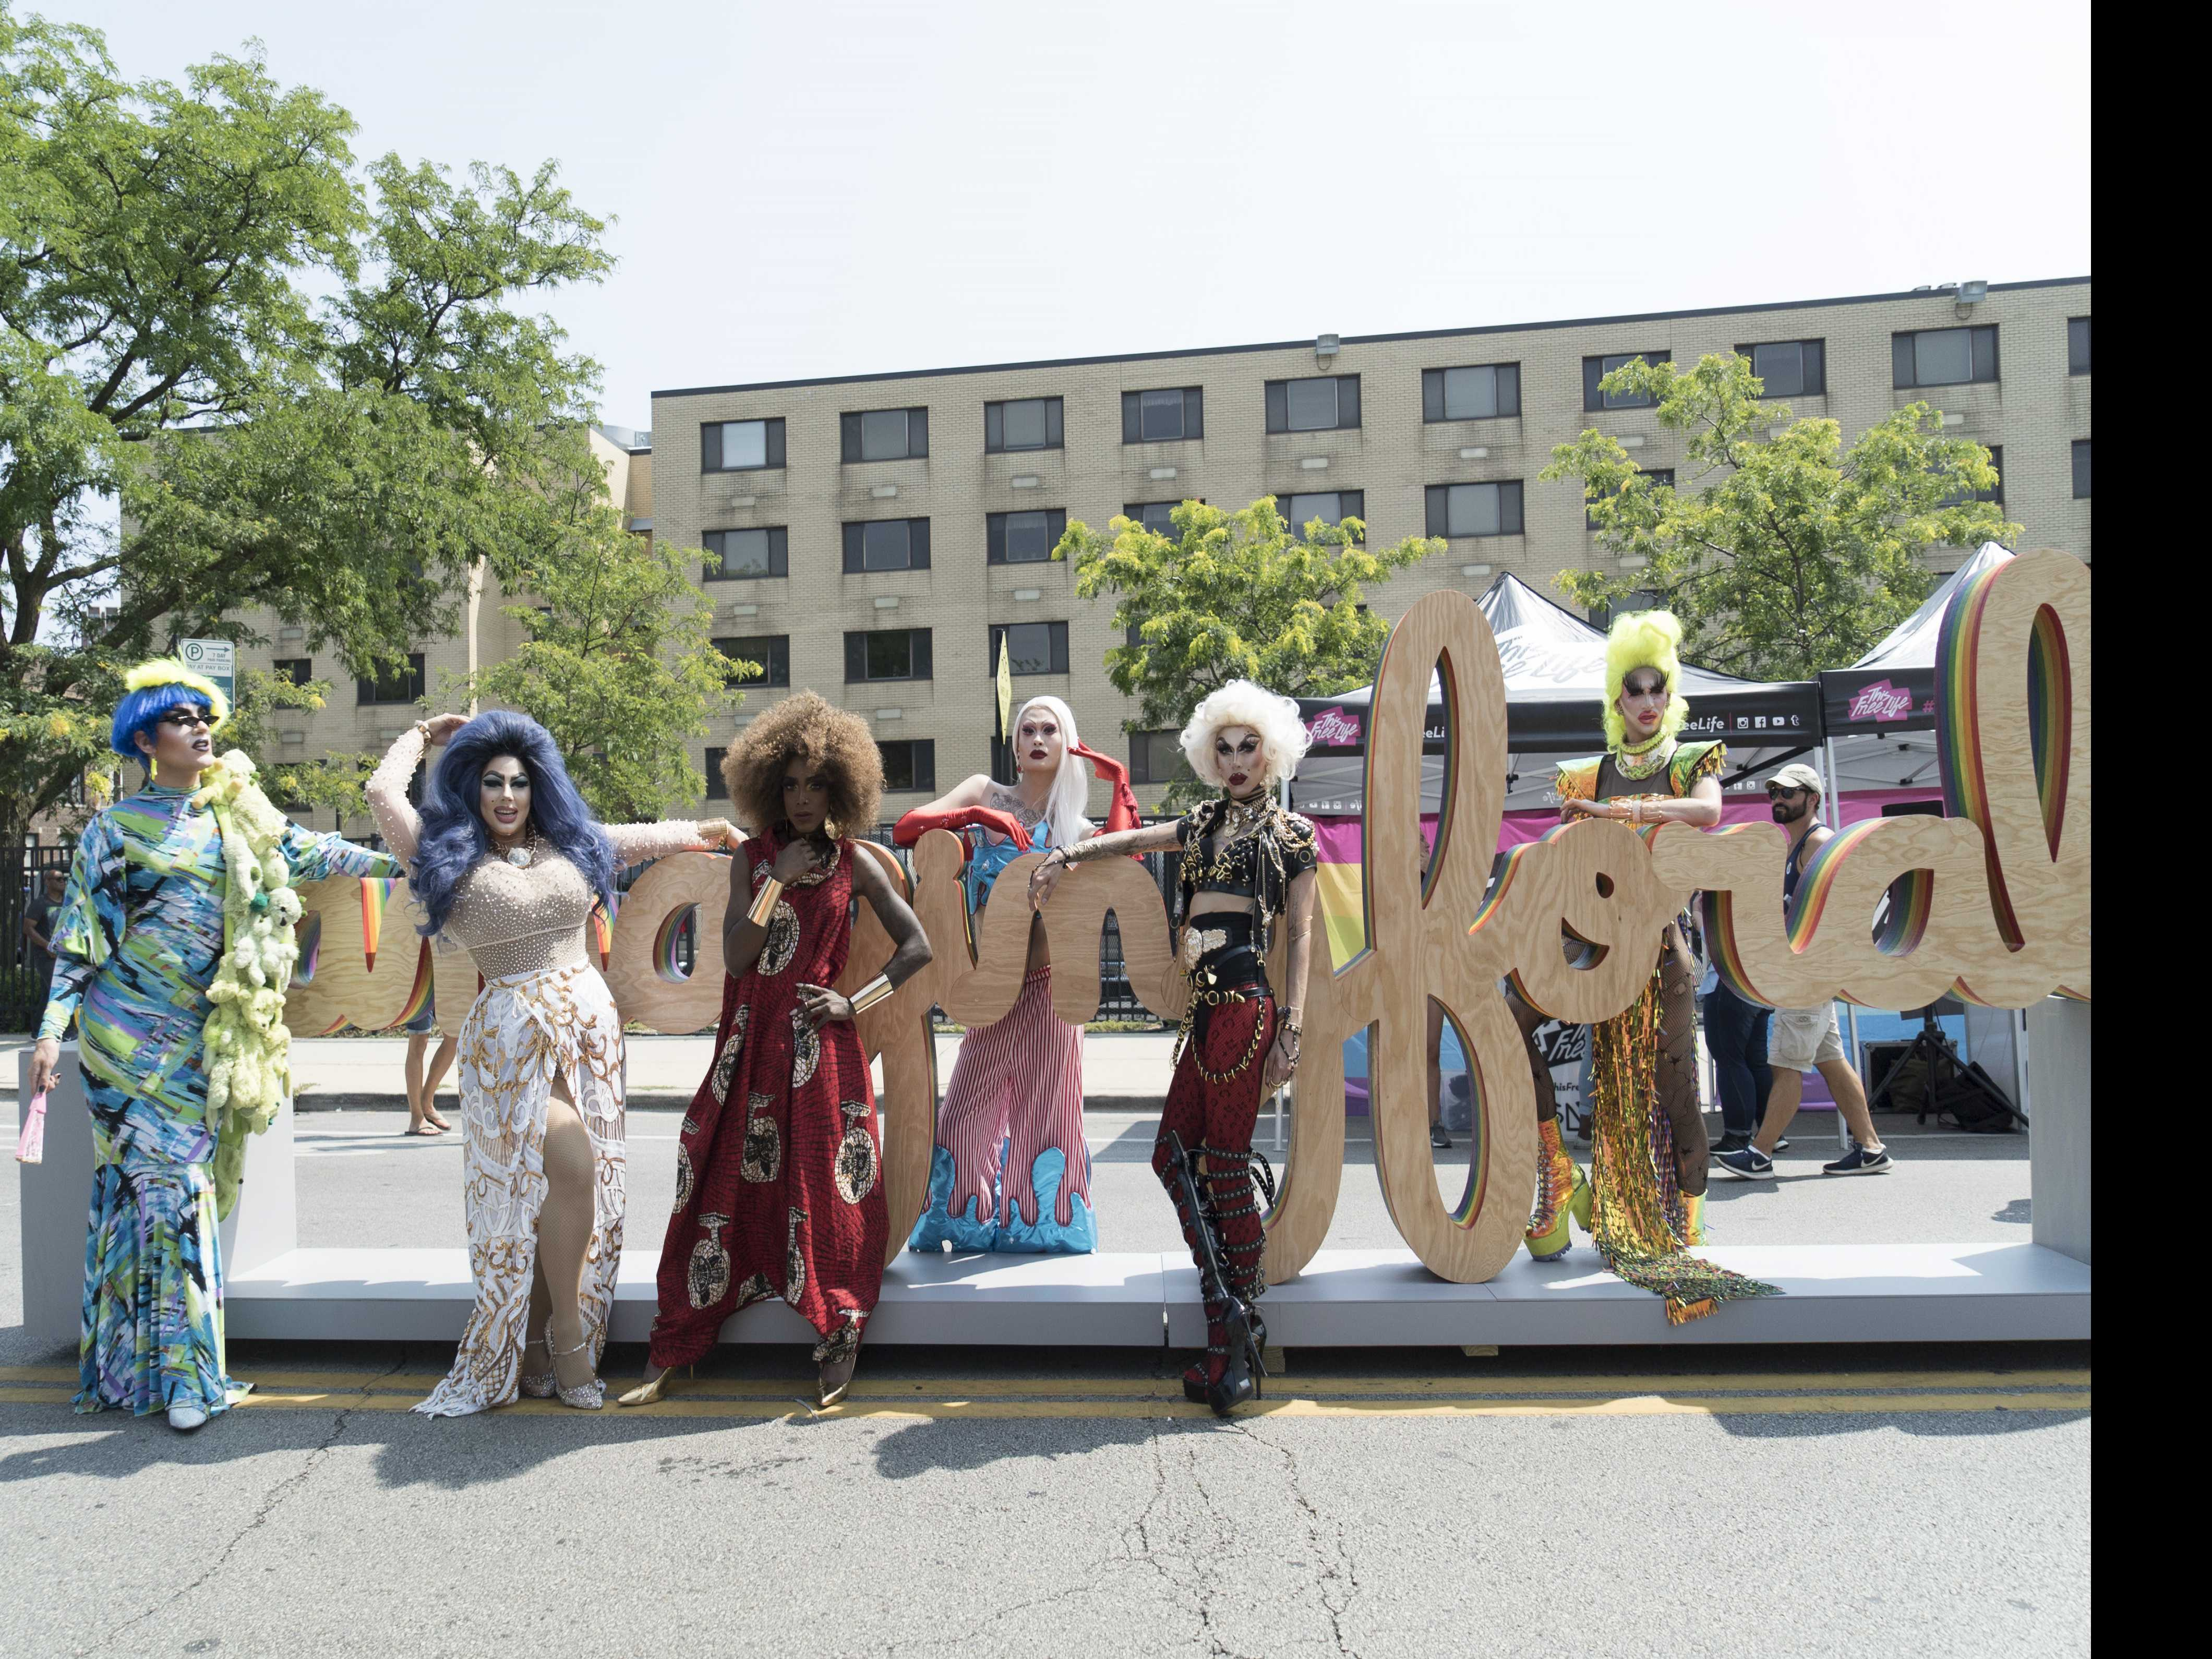 LGBTQ Art Installation Revealed at Chicago's Northalsted Market Days